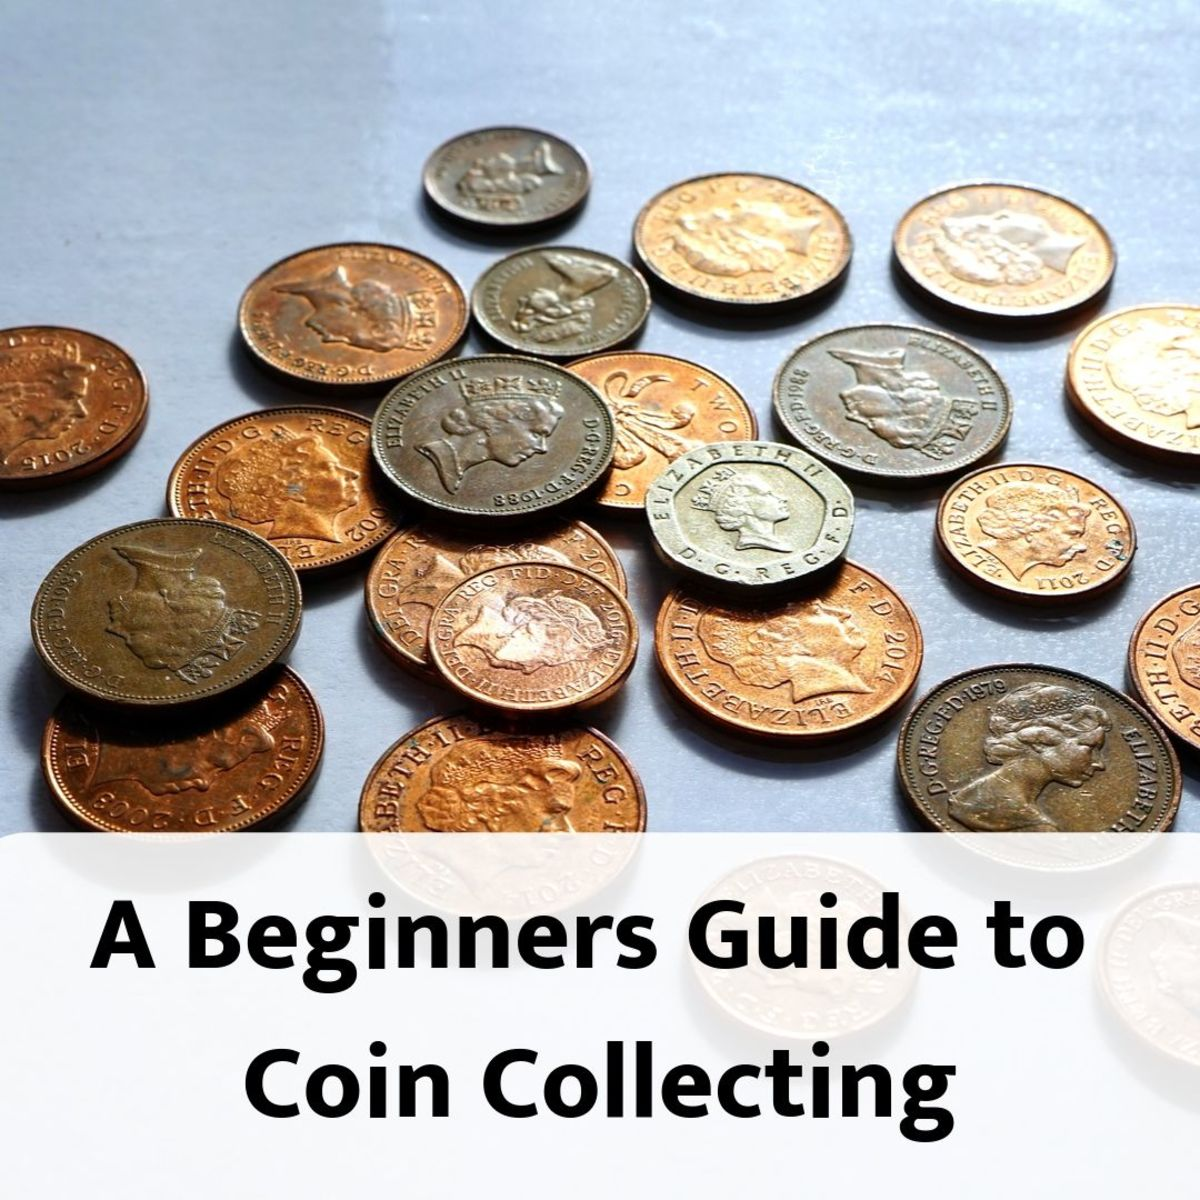 A reason for a coin's skyrocketing value may be in the limited number produced, either intentionally or because there was a flaw in the coin's minting.